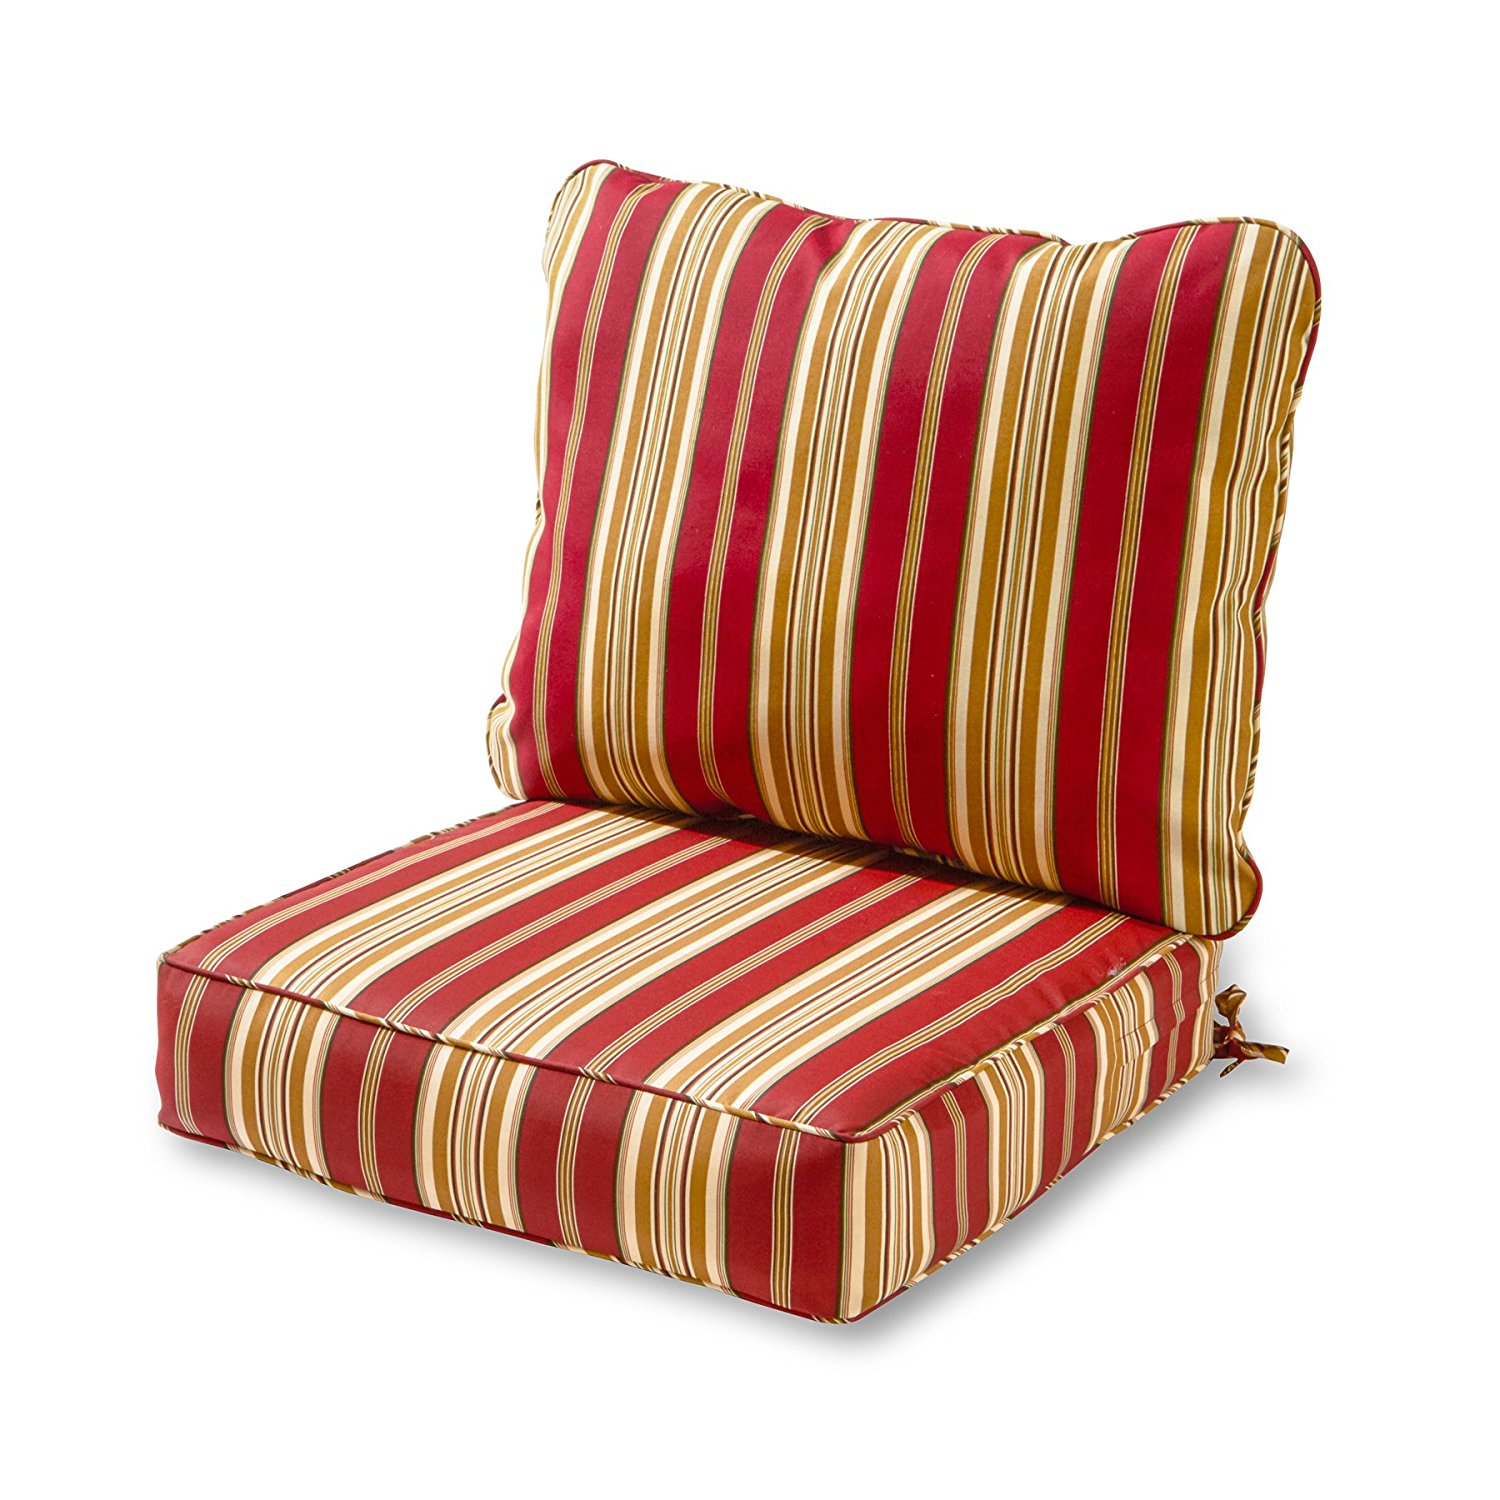 Outdoor Pillows Sunbrella | Sunbrella Seat Cushions | Outdoor Cushions Sunbrella Fabric